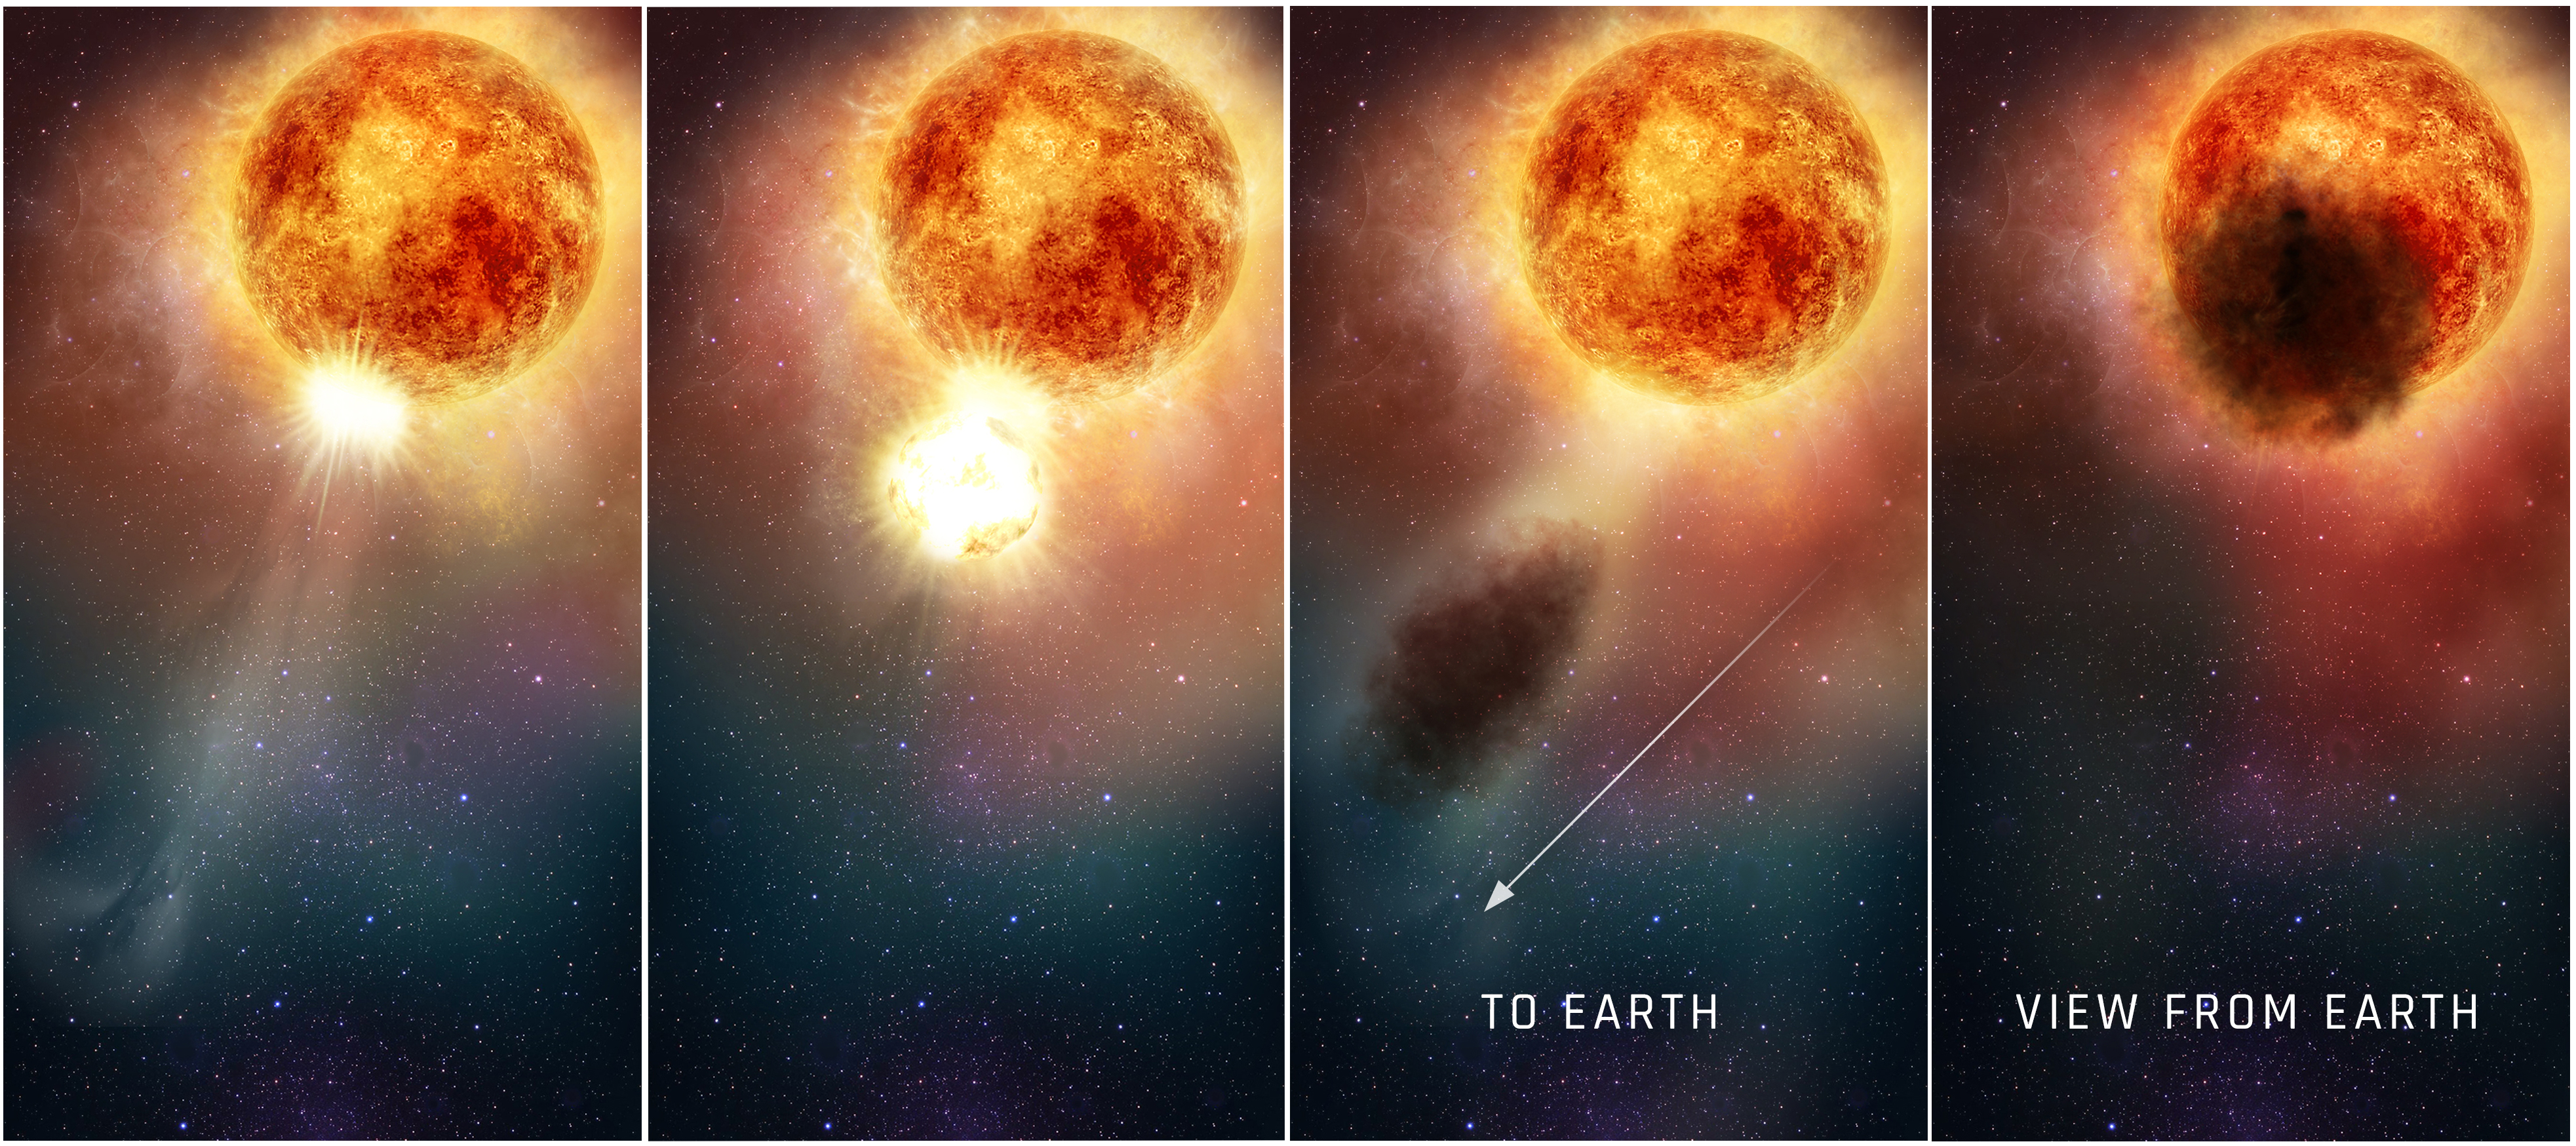 An artist's depiction of one hypothesis to explain Betelgeuse's dramatic dimming: The star shot out matter that eventually traveled far enough from the star to cool into dust, blocking Earth's view of the star.